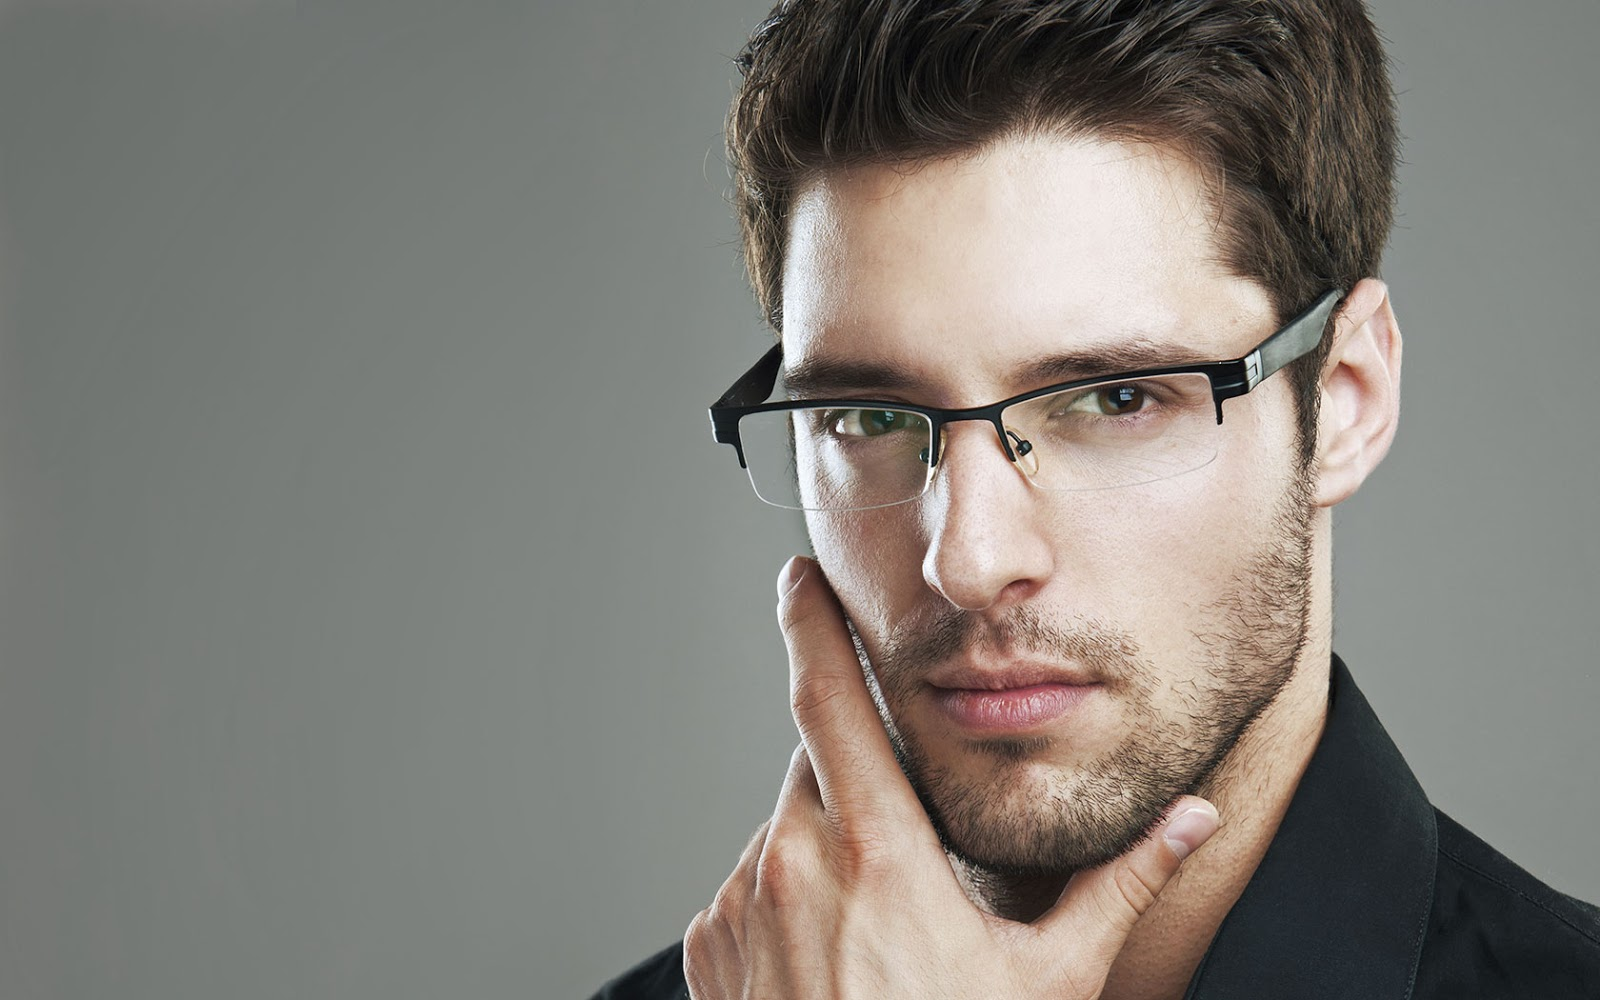 Glasses Frames Male : 5 HOT MENS STYLE & GROOMING TRENDS FOR 2016 ~ THE MALE ...